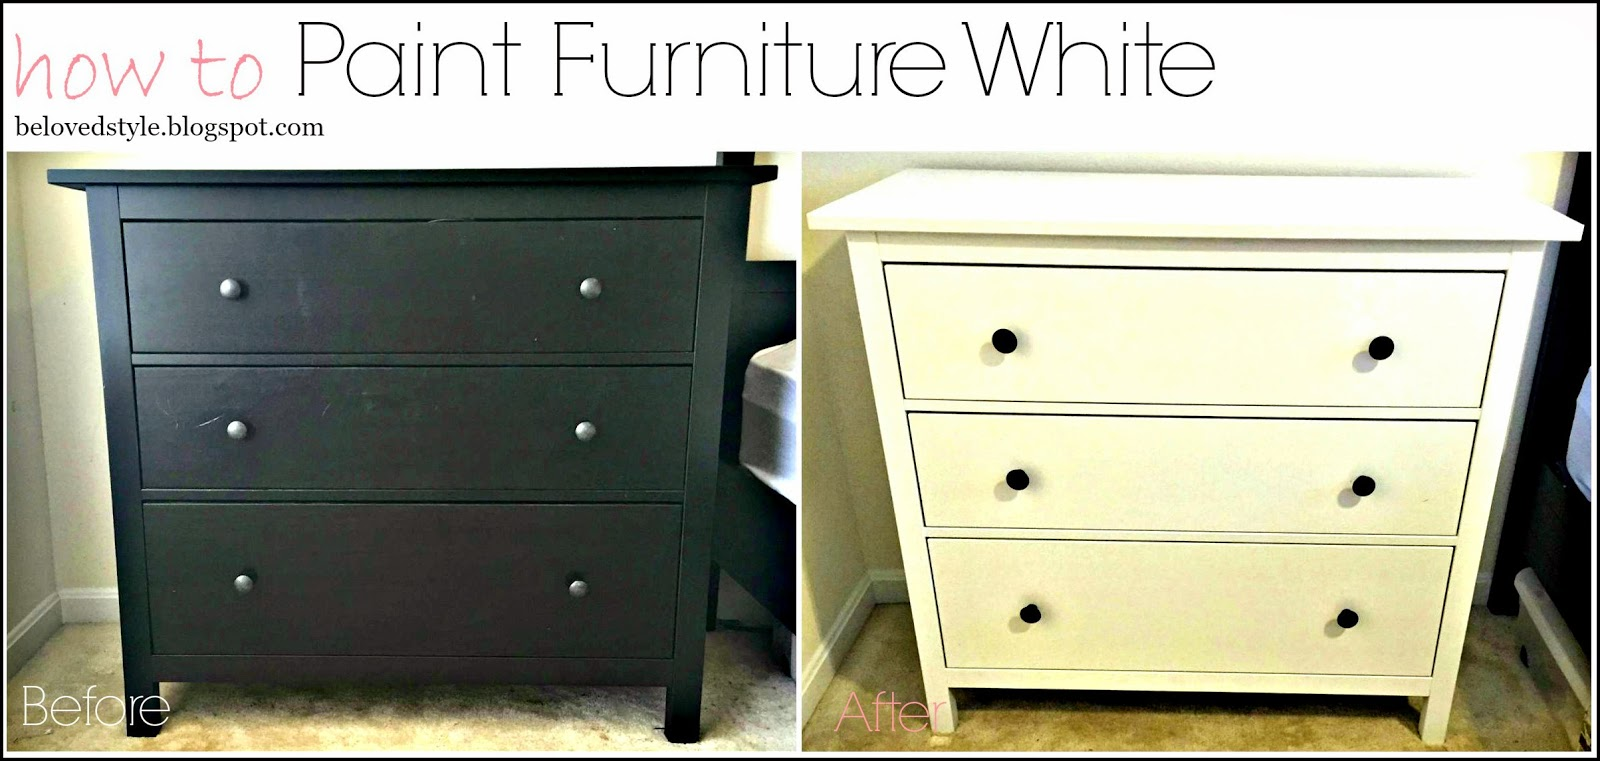 painting furniture whiteBeloved Style How to Paint Furniture White